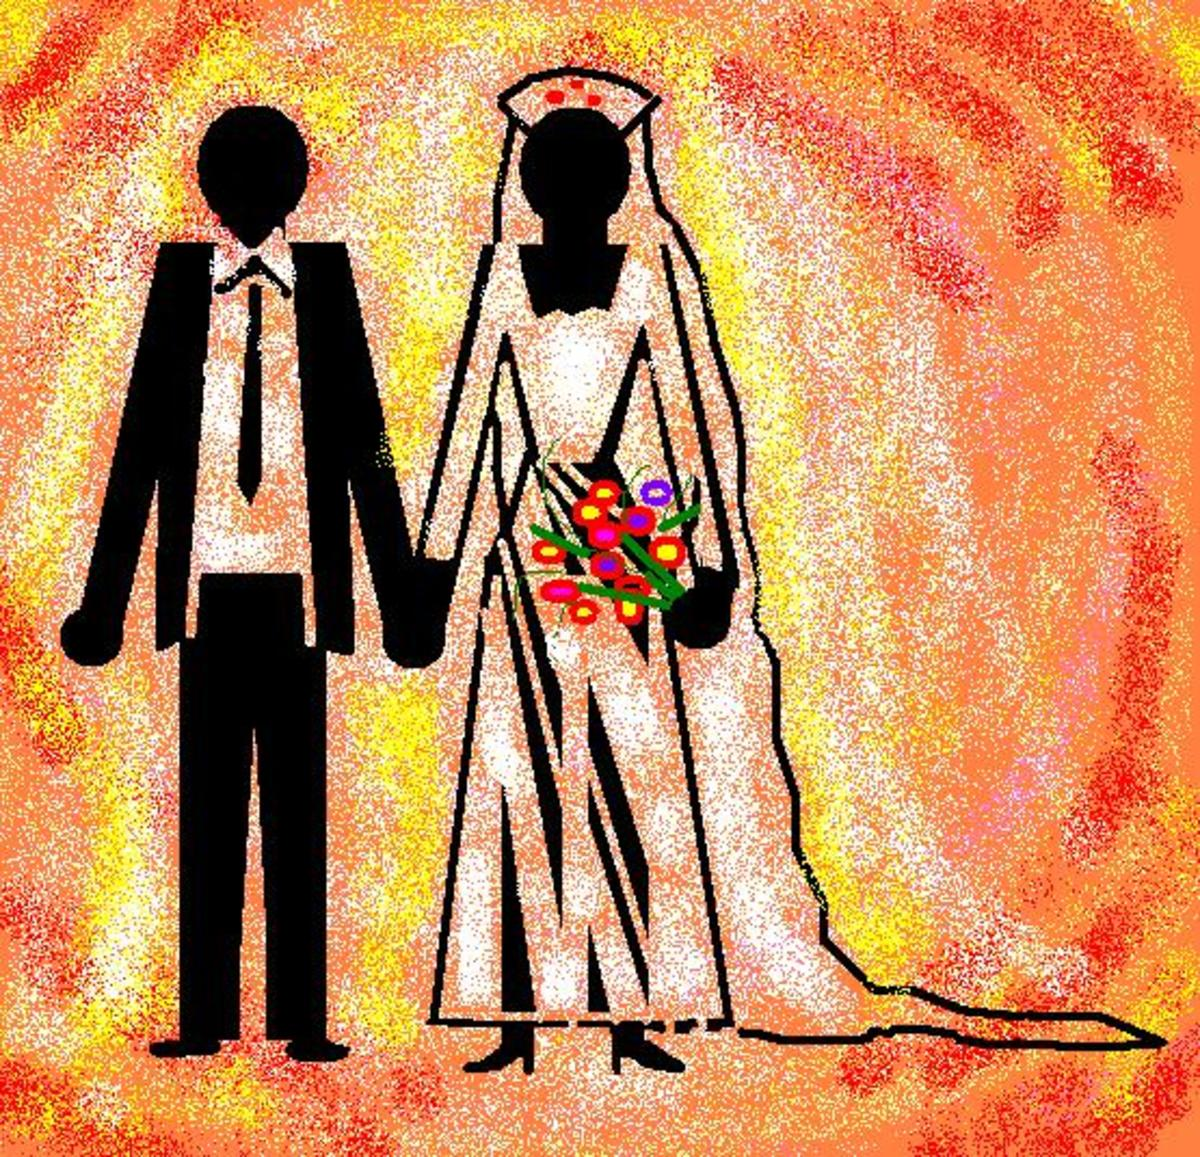 betrothal-and-marriage-ceremonies-among-the-kikuyu-of-kenya